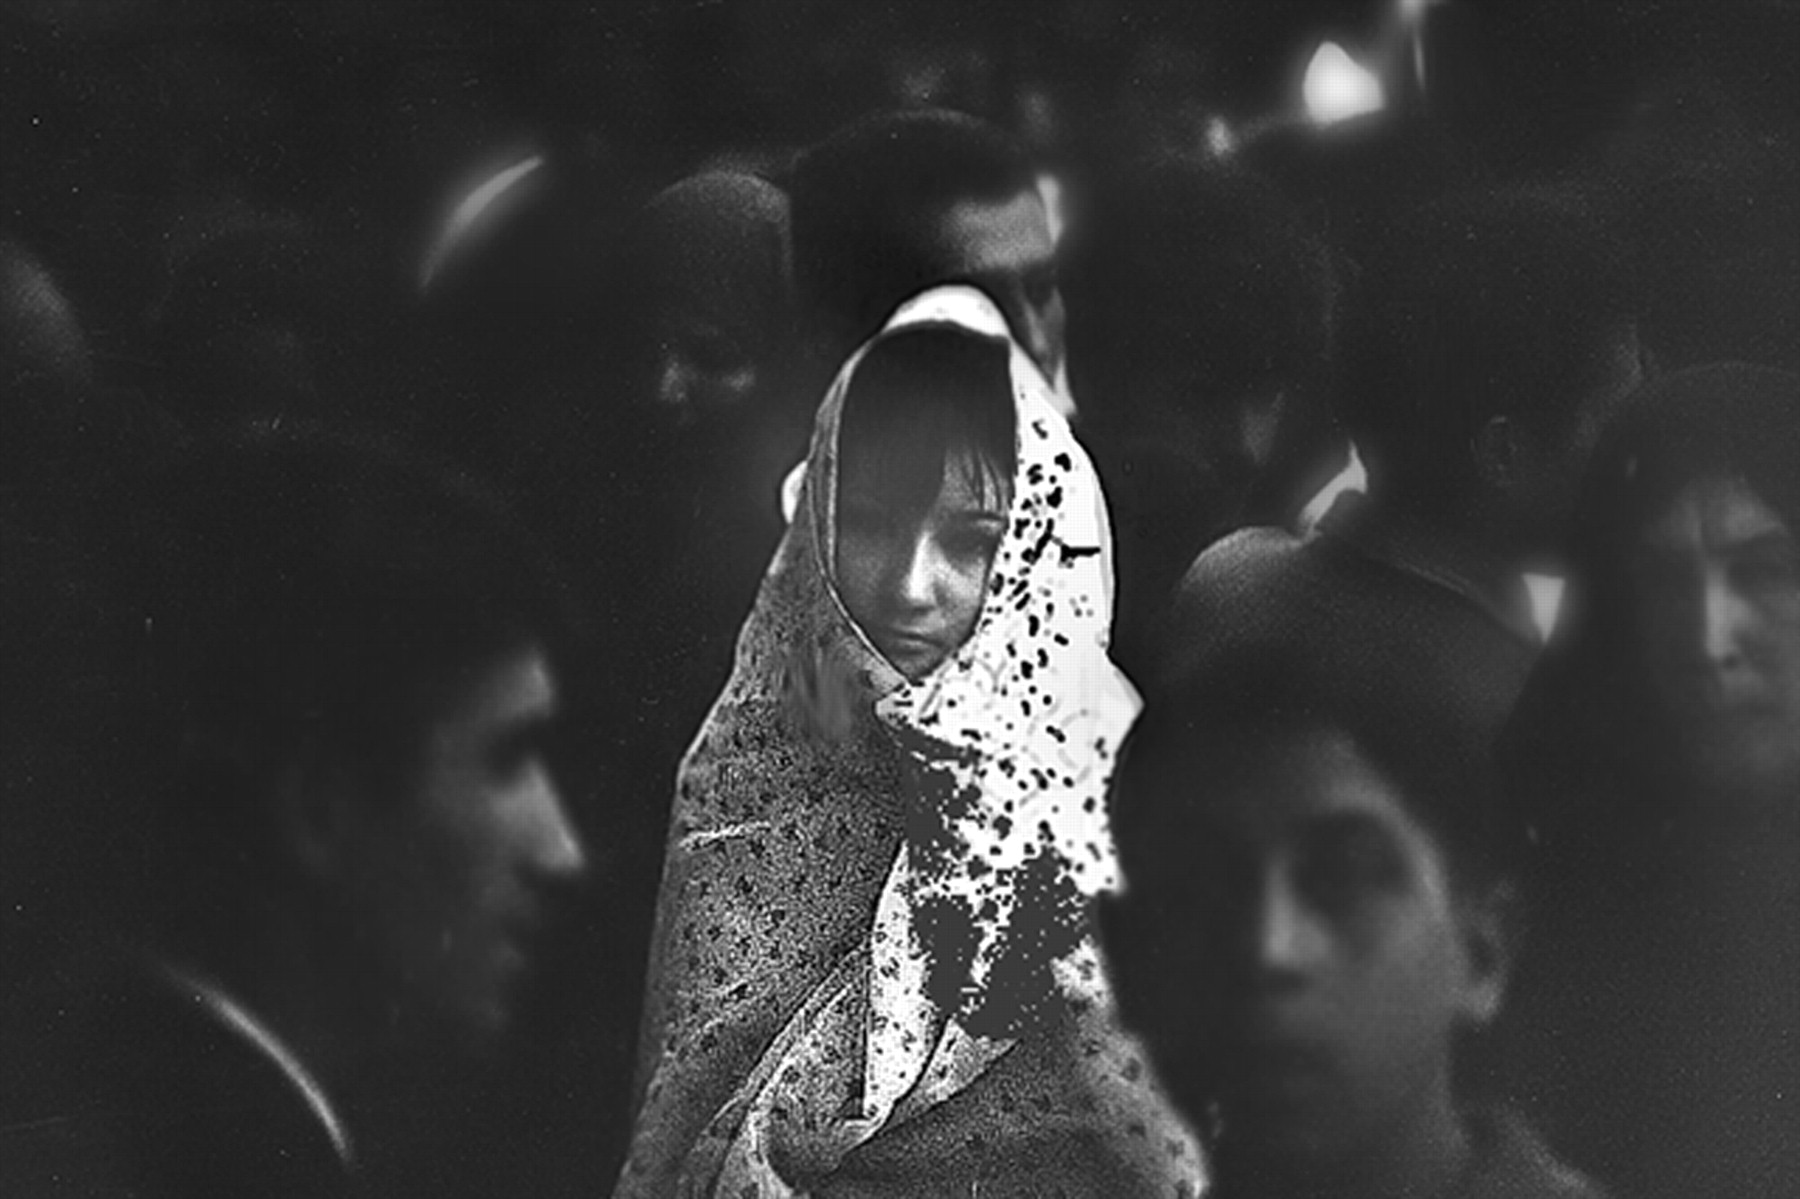 chris-marker-untitledtehran1950s.jpeg